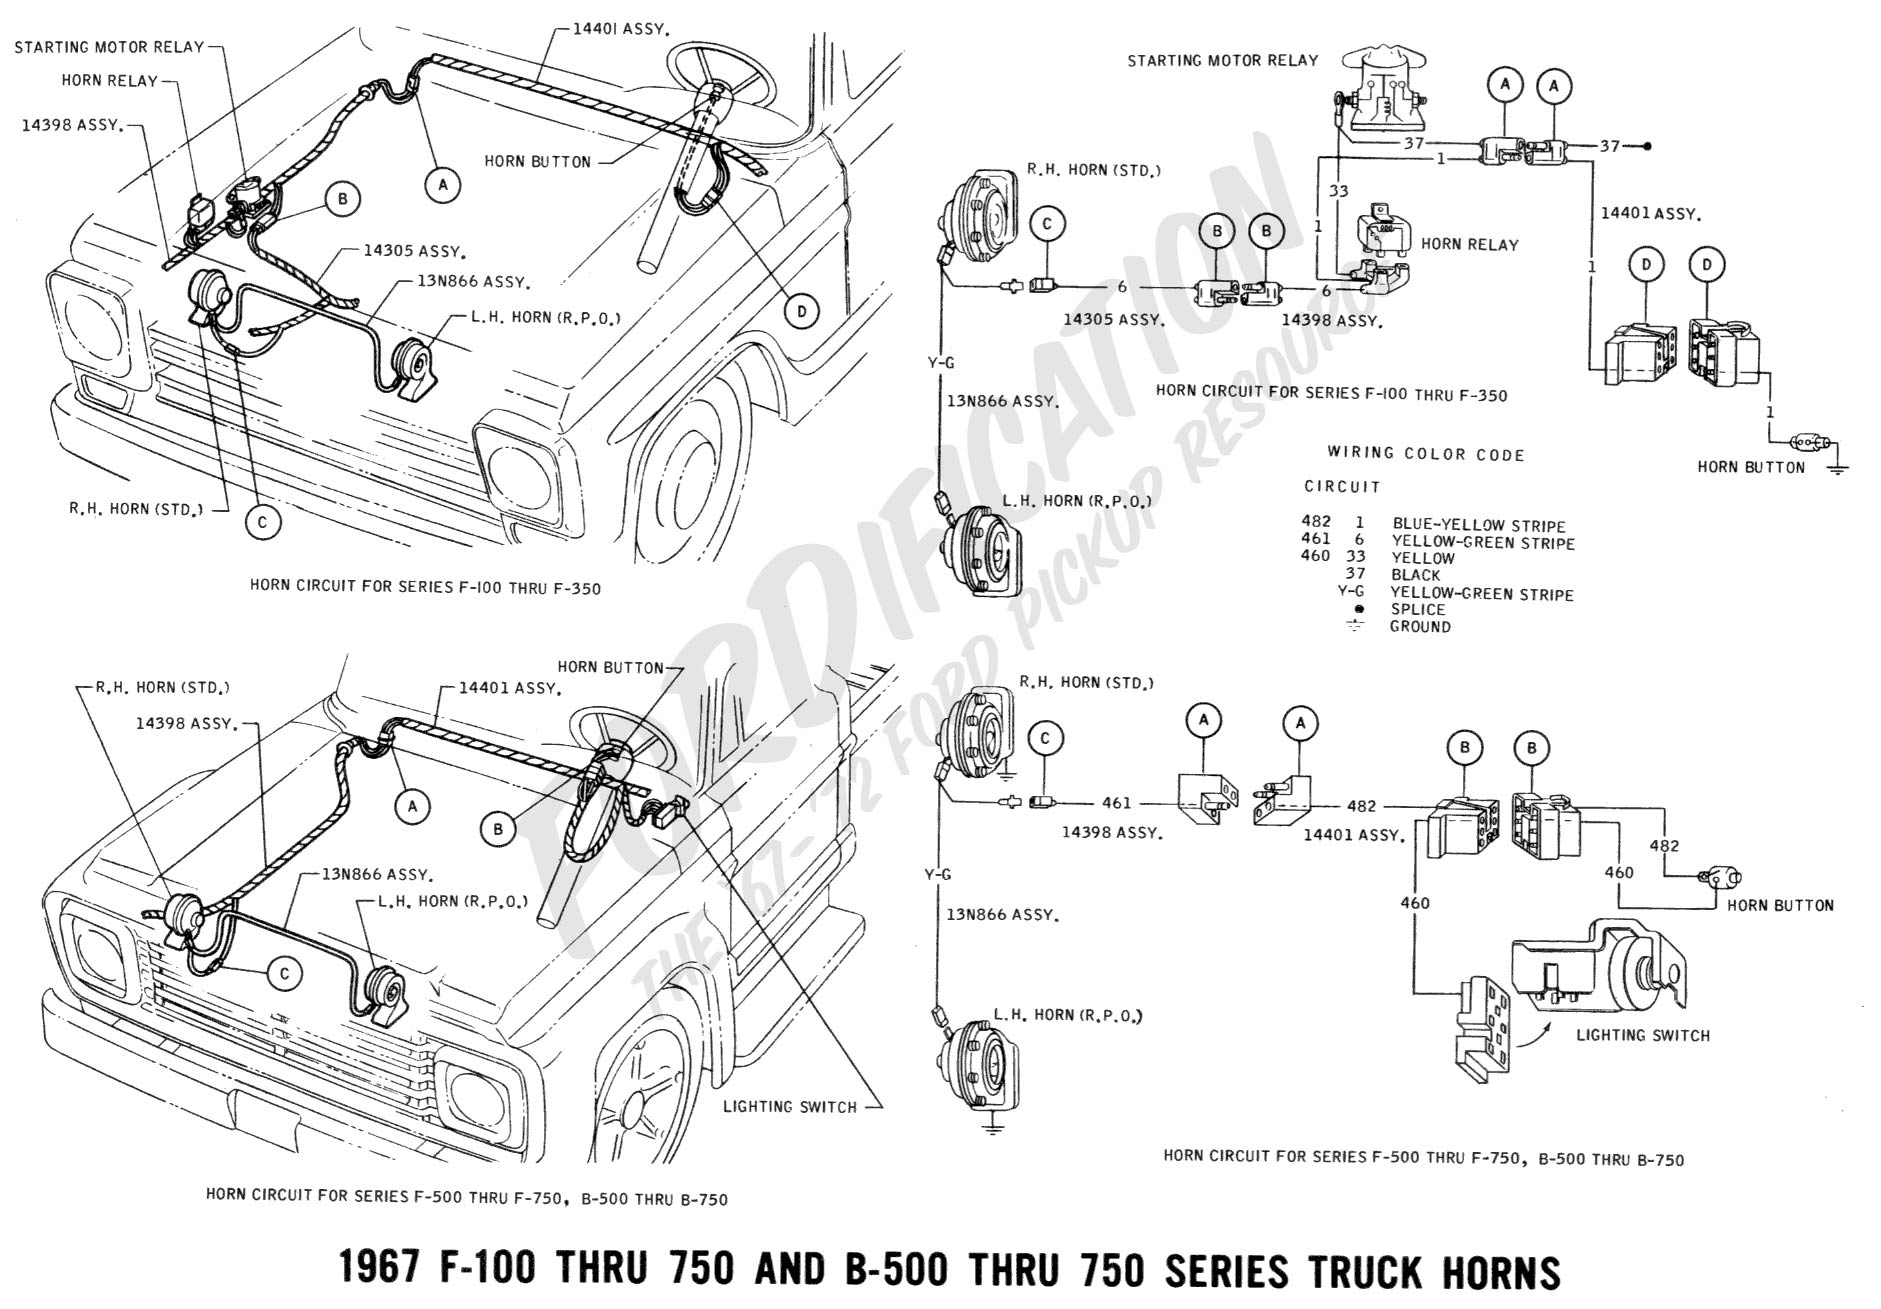 1973 F100 Turn Signal Wiring Diagram likewise maxrules   mercwireindex also 61 Chevy Truck Wiring Diagram further 99 Cavalier Electrical Wiring also 1960 66 Chevy Gmc Truck Hood To Cowl Seal. on 1961 chevy c10 wiring diagram